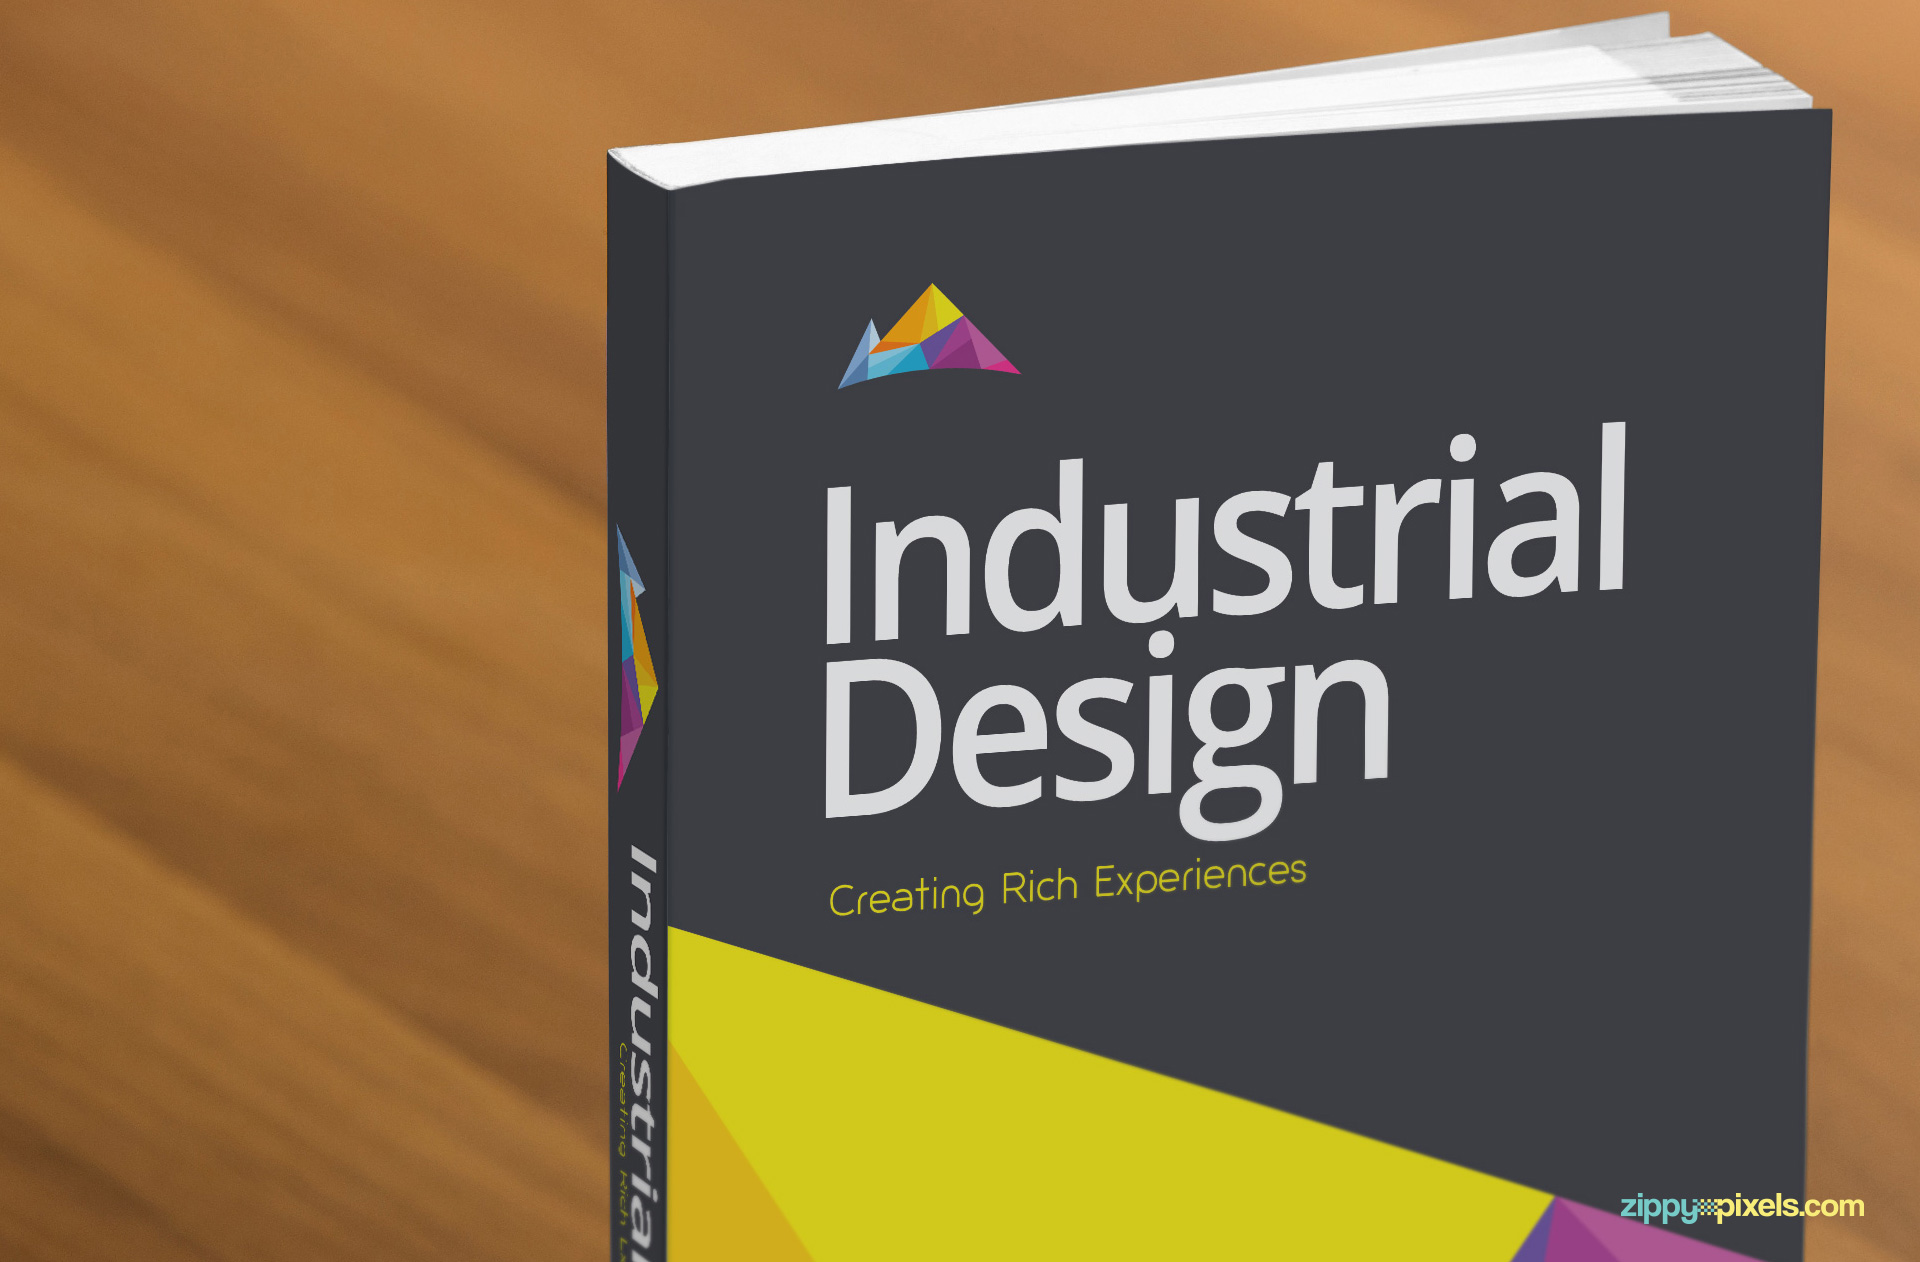 Book Jacket Cover Design : Free book cover mockup psd for and novel